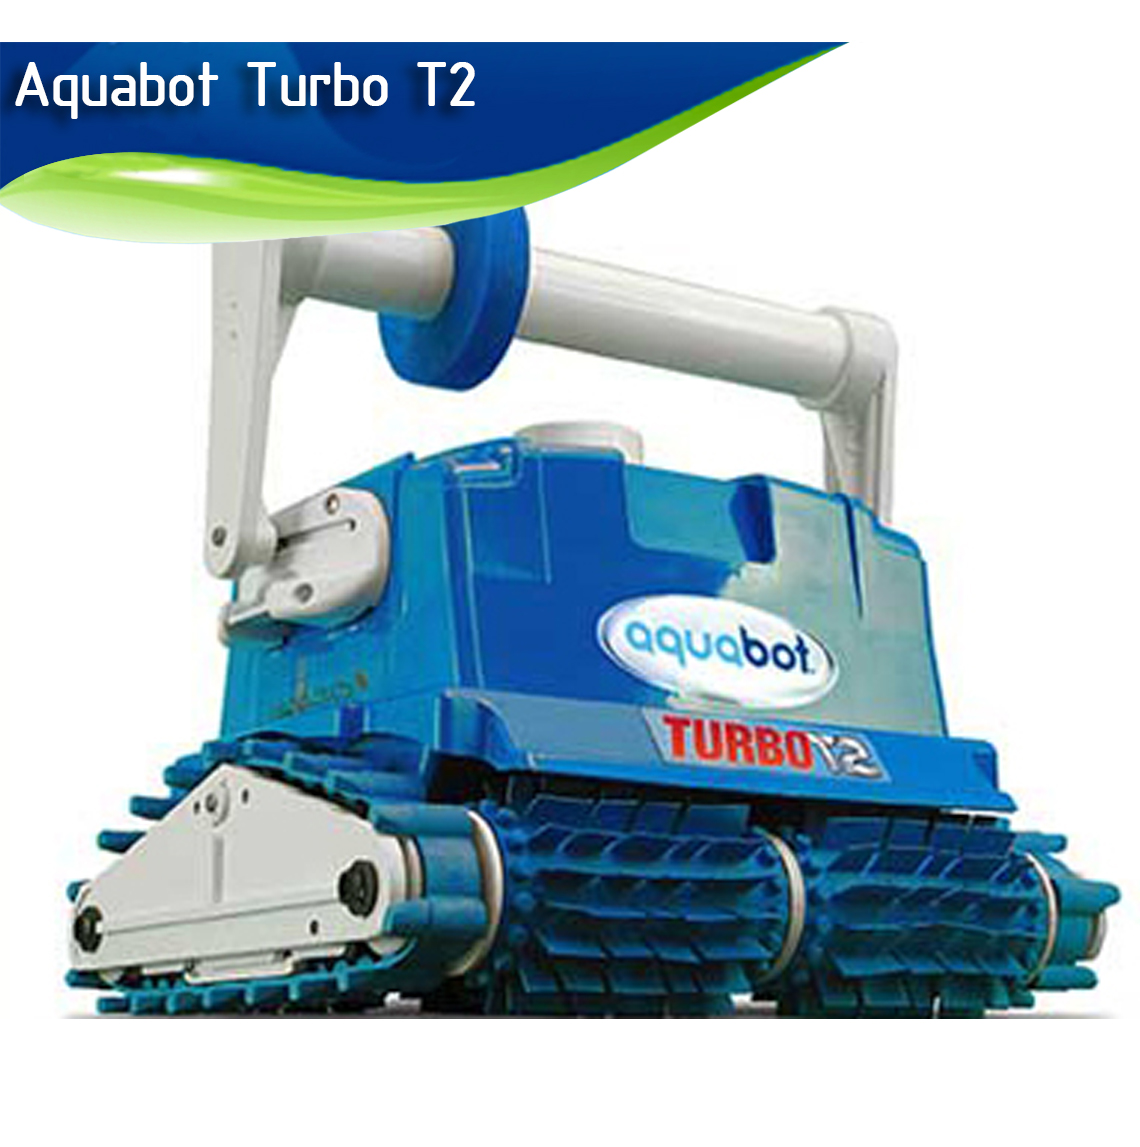 Aquabot Turbo T2 REVIEW